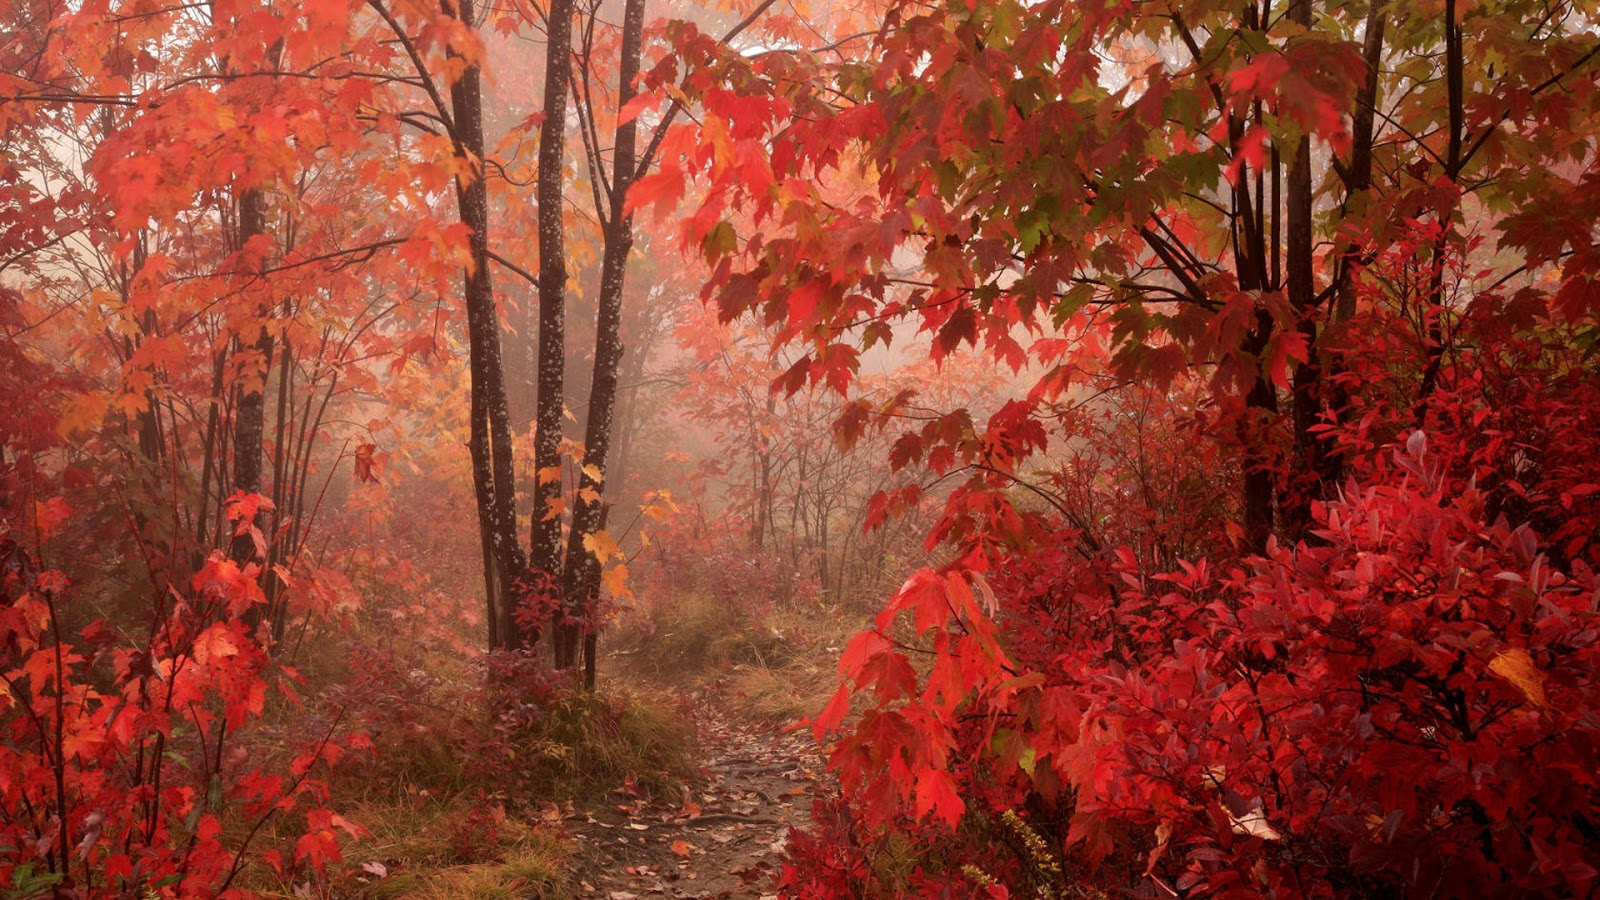 Labels Red Autumn Leaves Photography Hd Wallpapers For: Valentine Day 2014: Fall Wallpaper Backgrounds